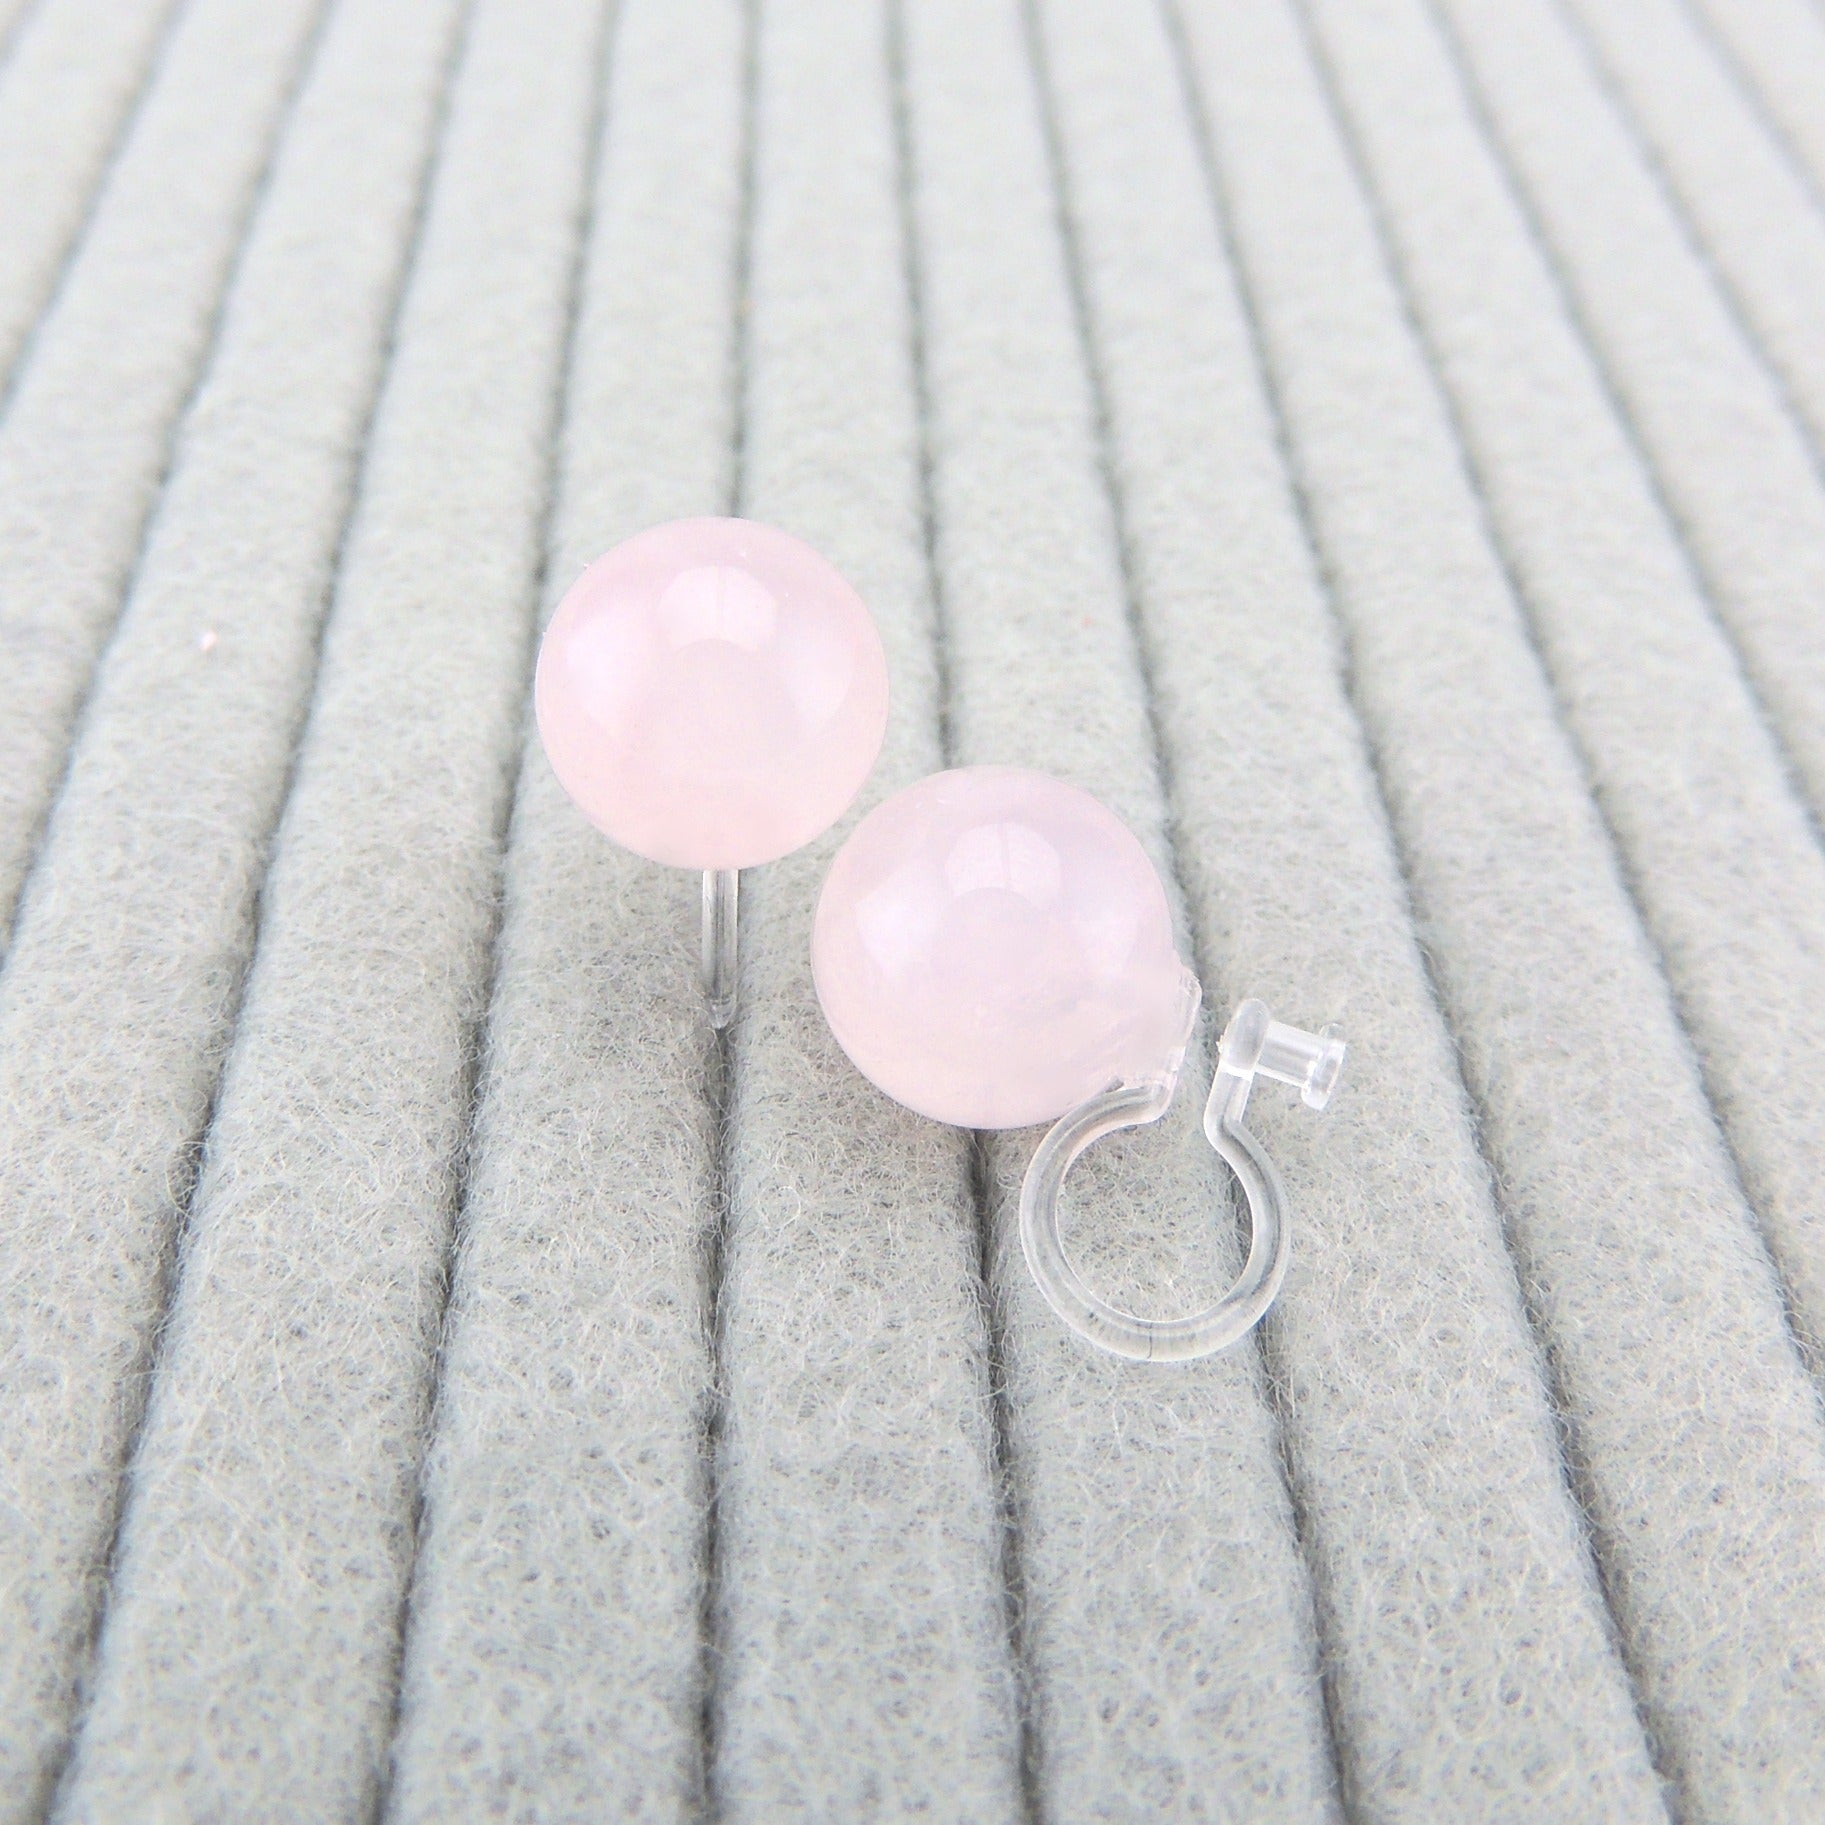 10mm Rose Quartz Stone Earrings, Metal Free Plastic Post or Invisible Clip On, Pale Pink